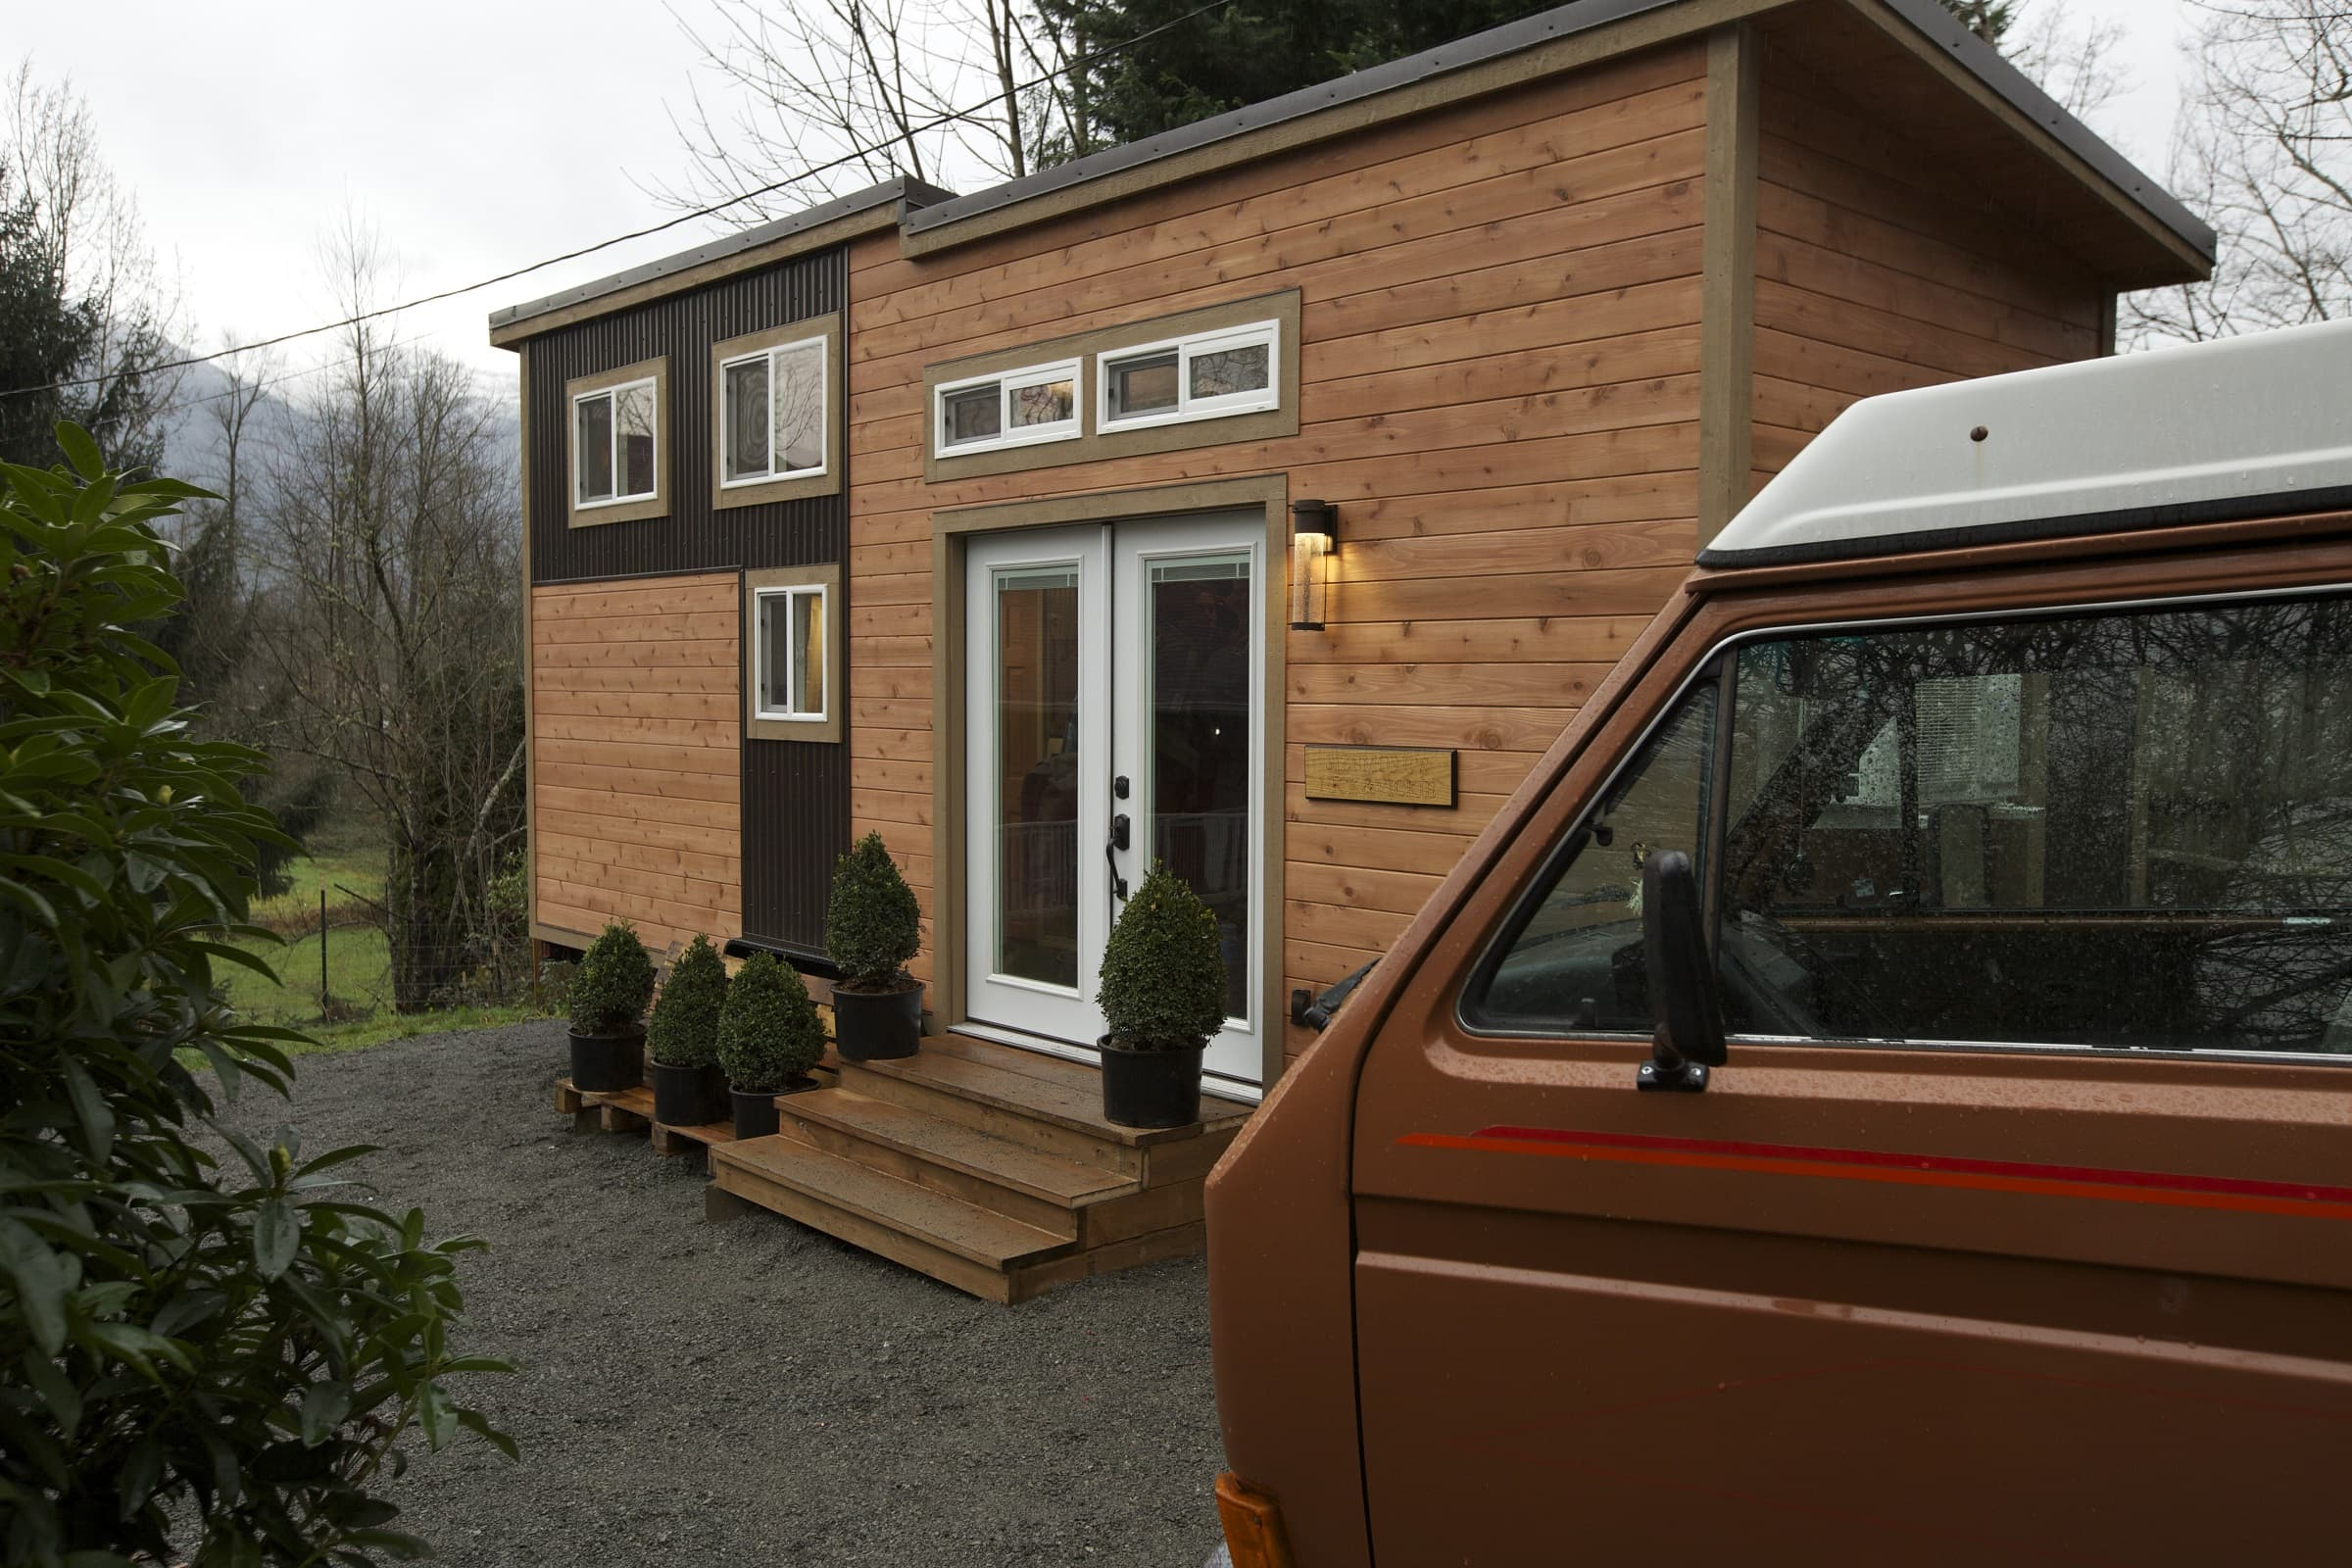 American-Tiny-House-Everett-Exterior-Van-American Tiny House-HQ